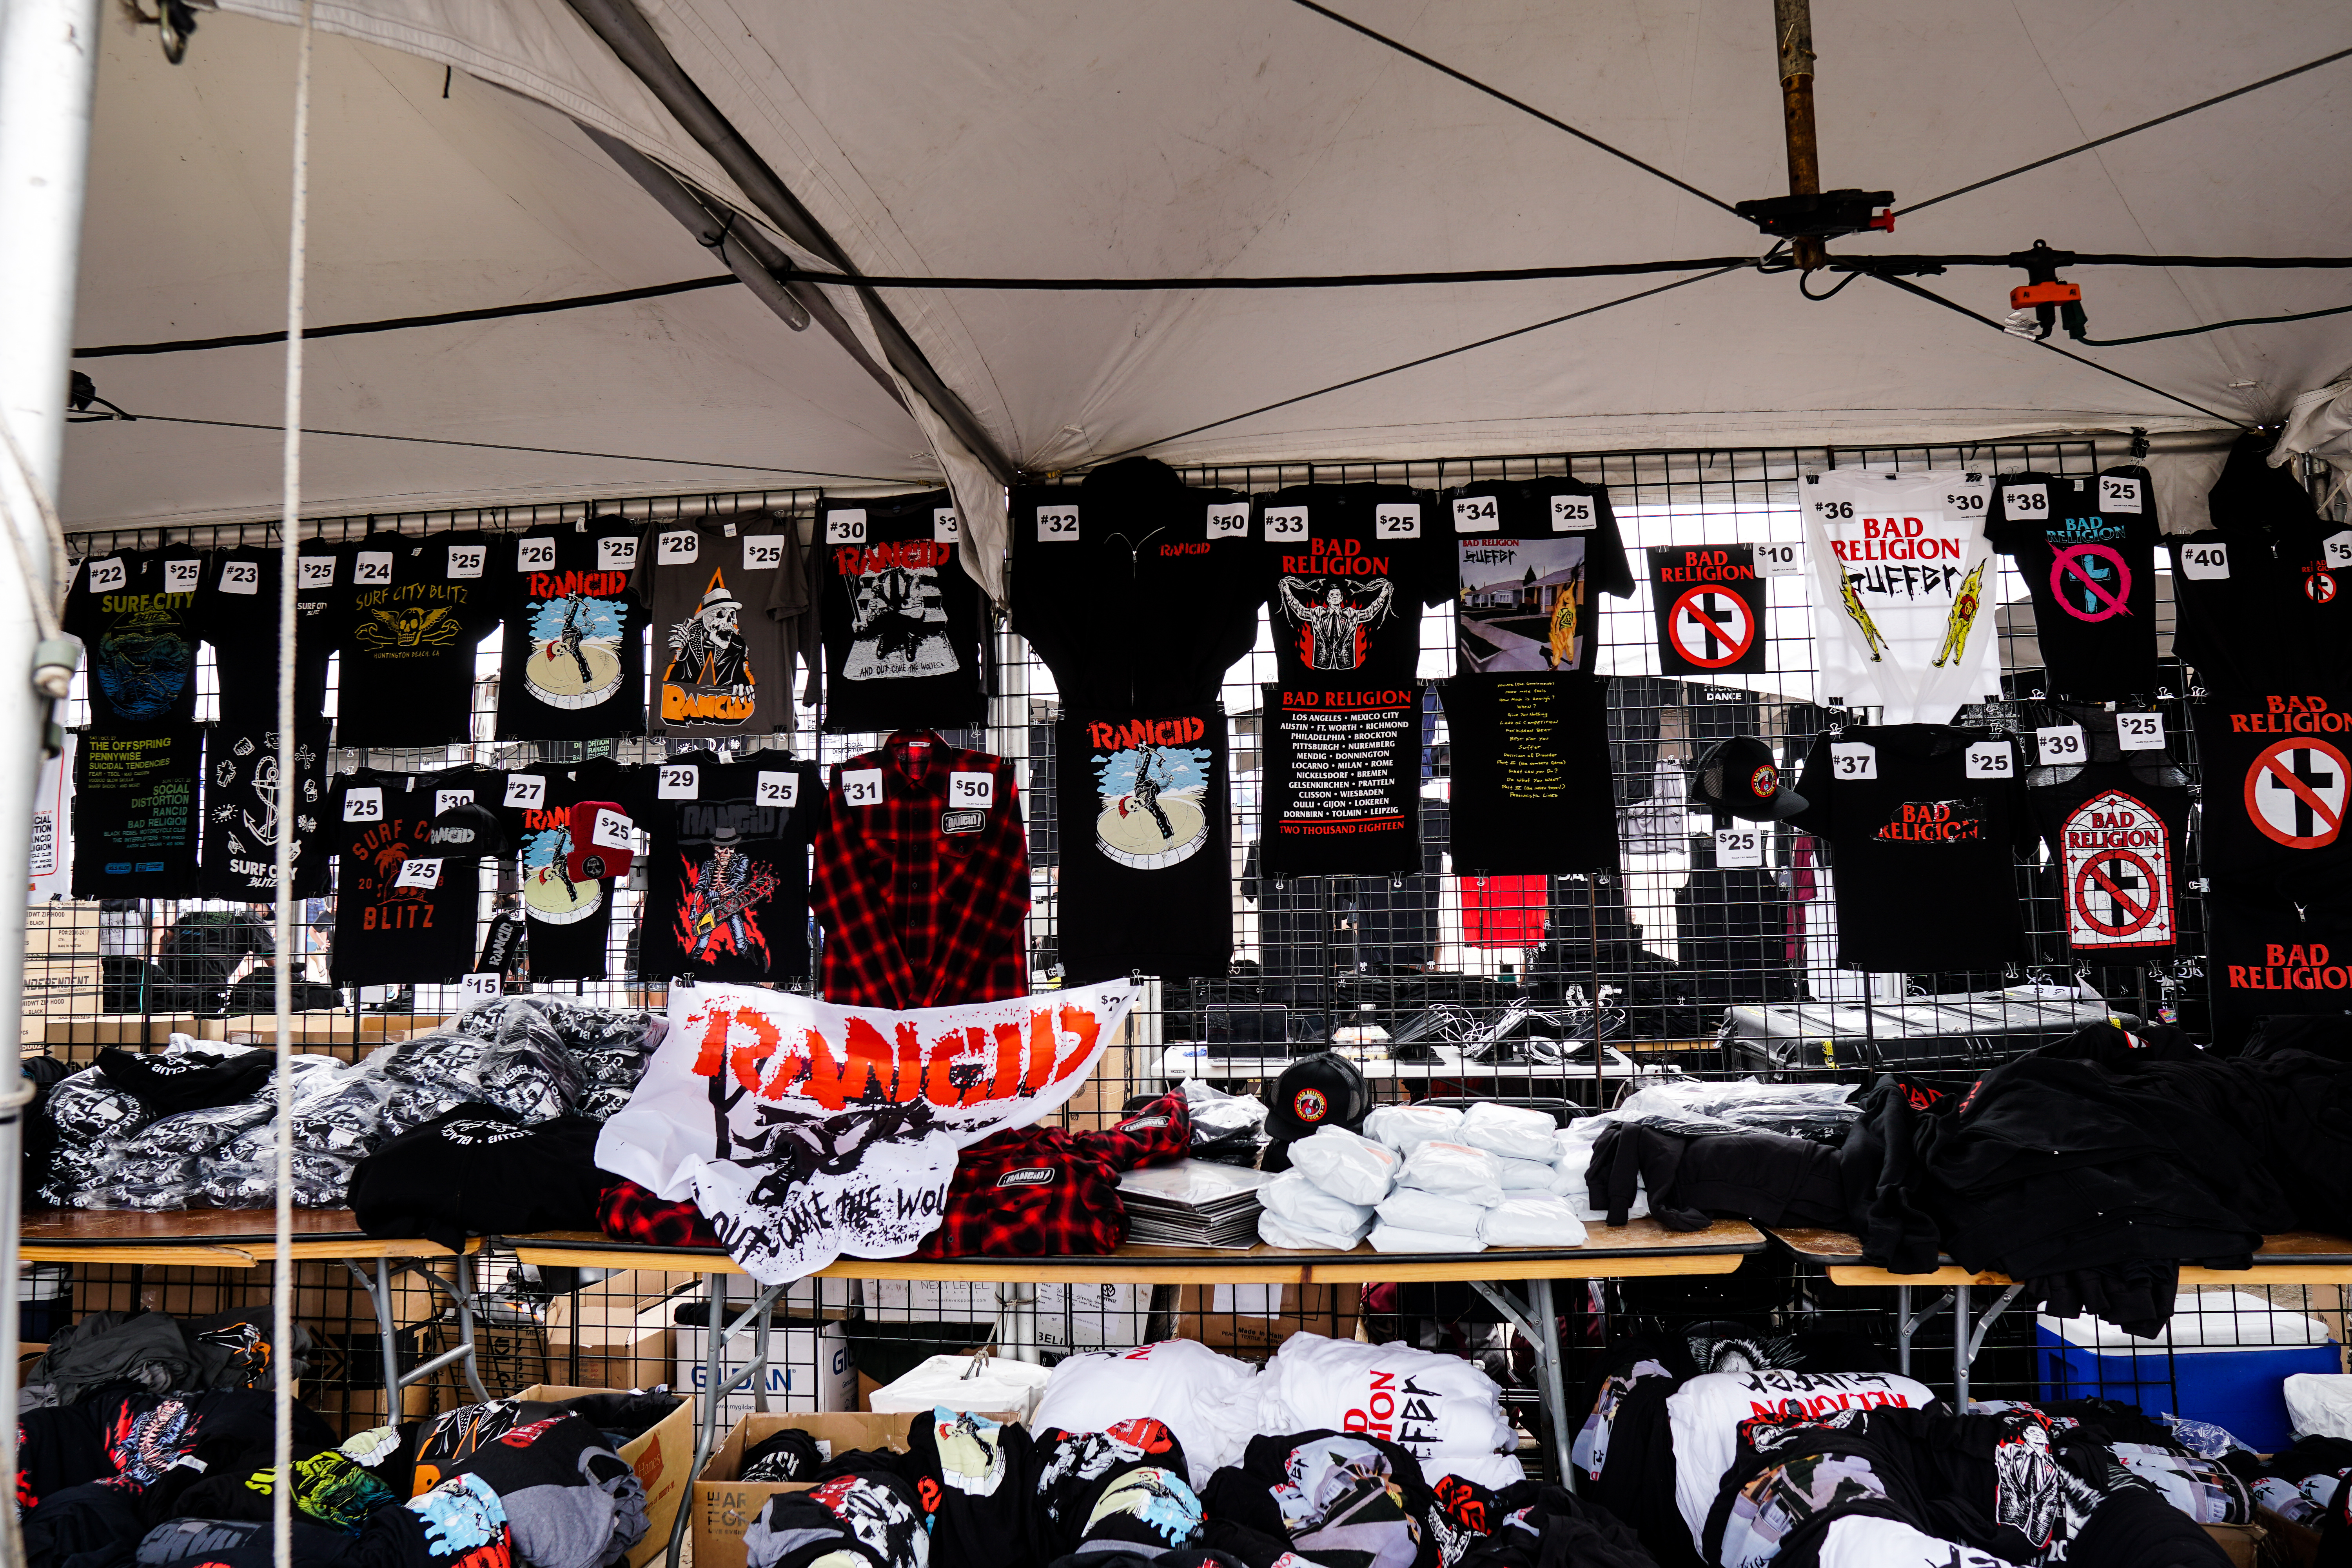 The Merch Table for Rancid